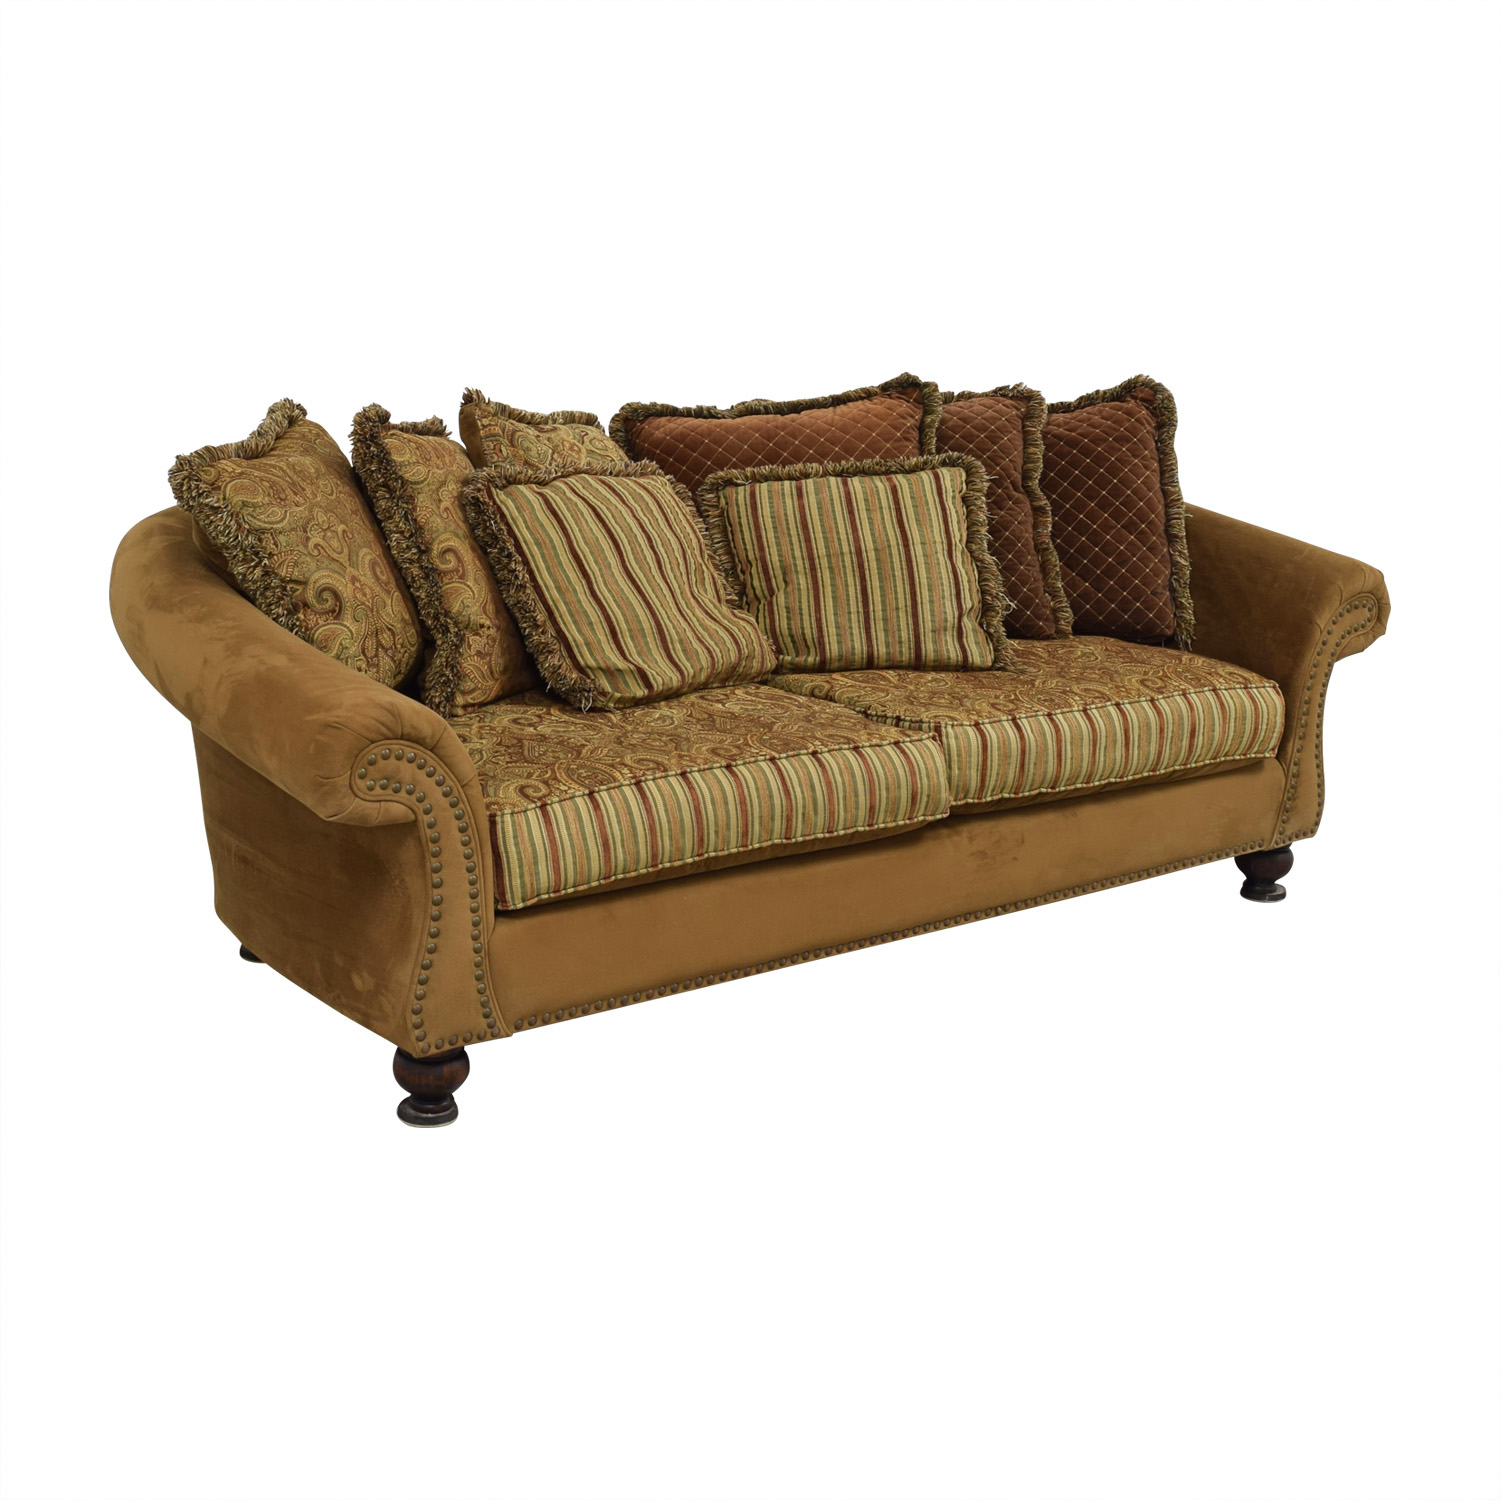 ... Buy Cindy Crawford Home Microfiber Faux Suede Nailhead Two Cushion Couch  Cindy Crawford Home Sofas ...